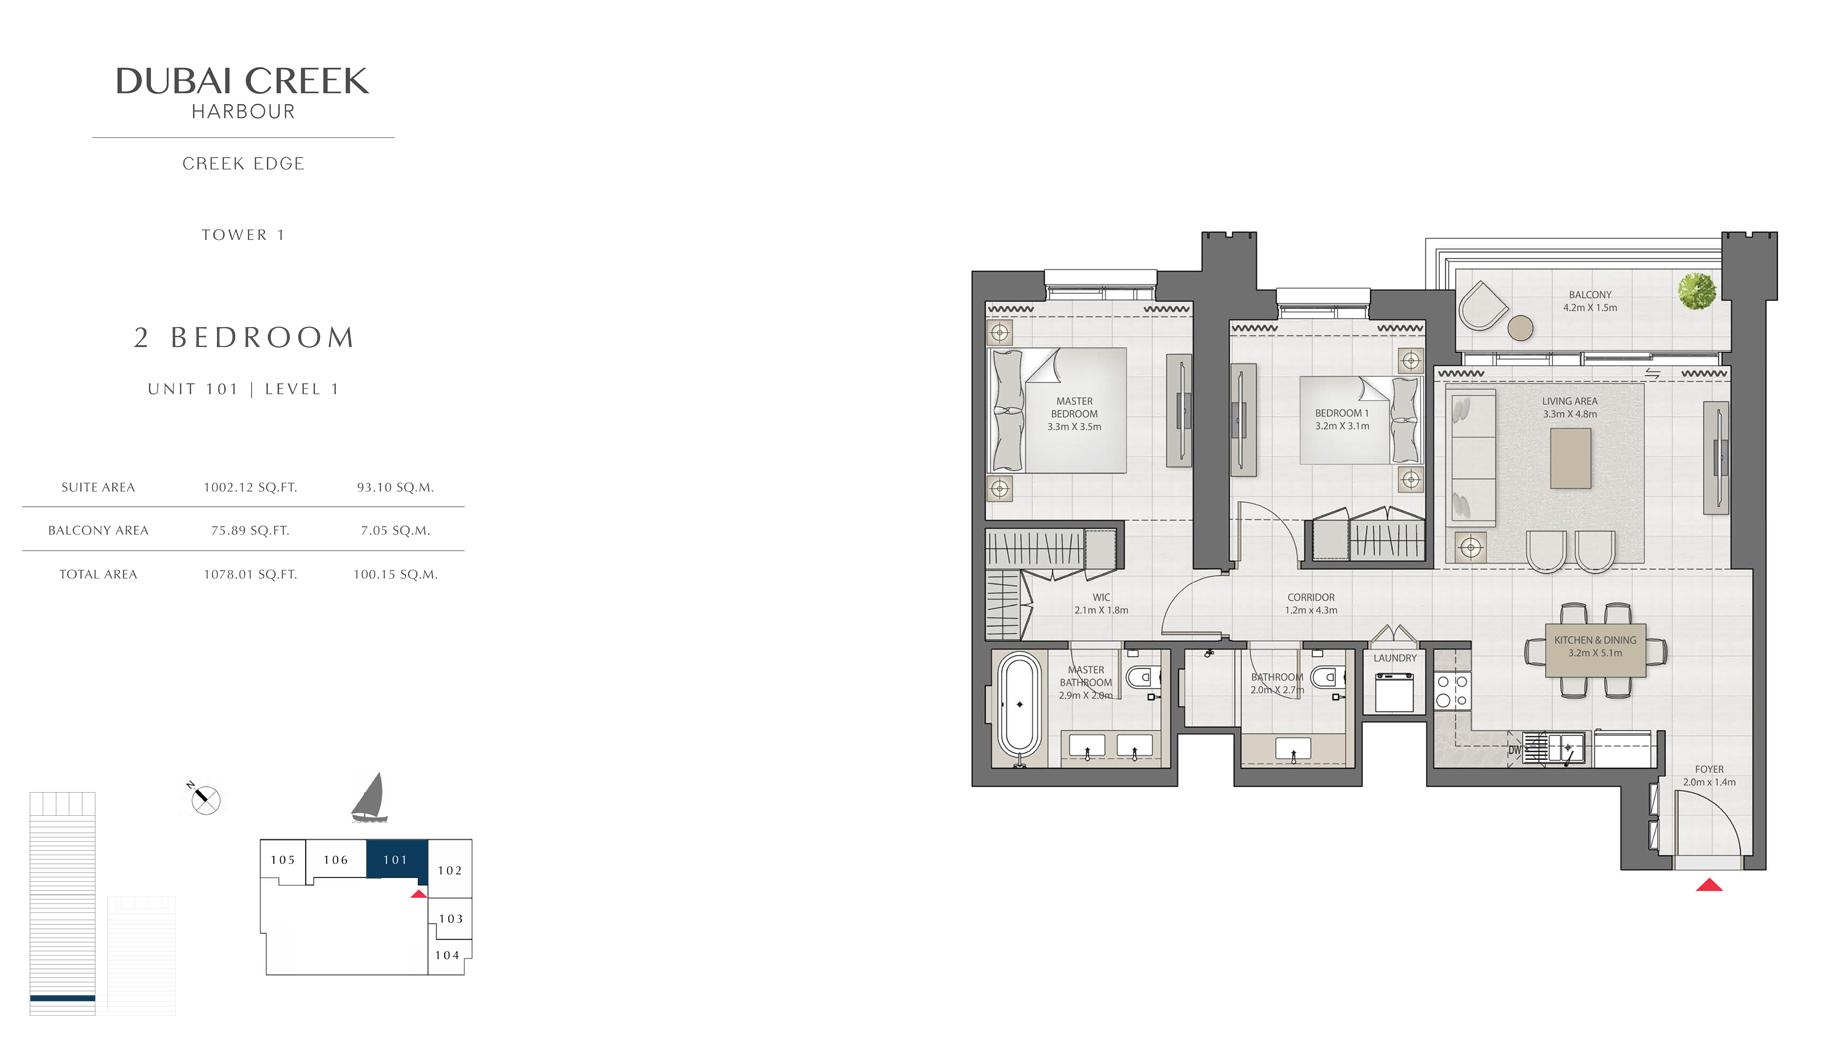 2 Bedroom Tower 1 Unit 101 Level 1 Size 1078 sq.ft